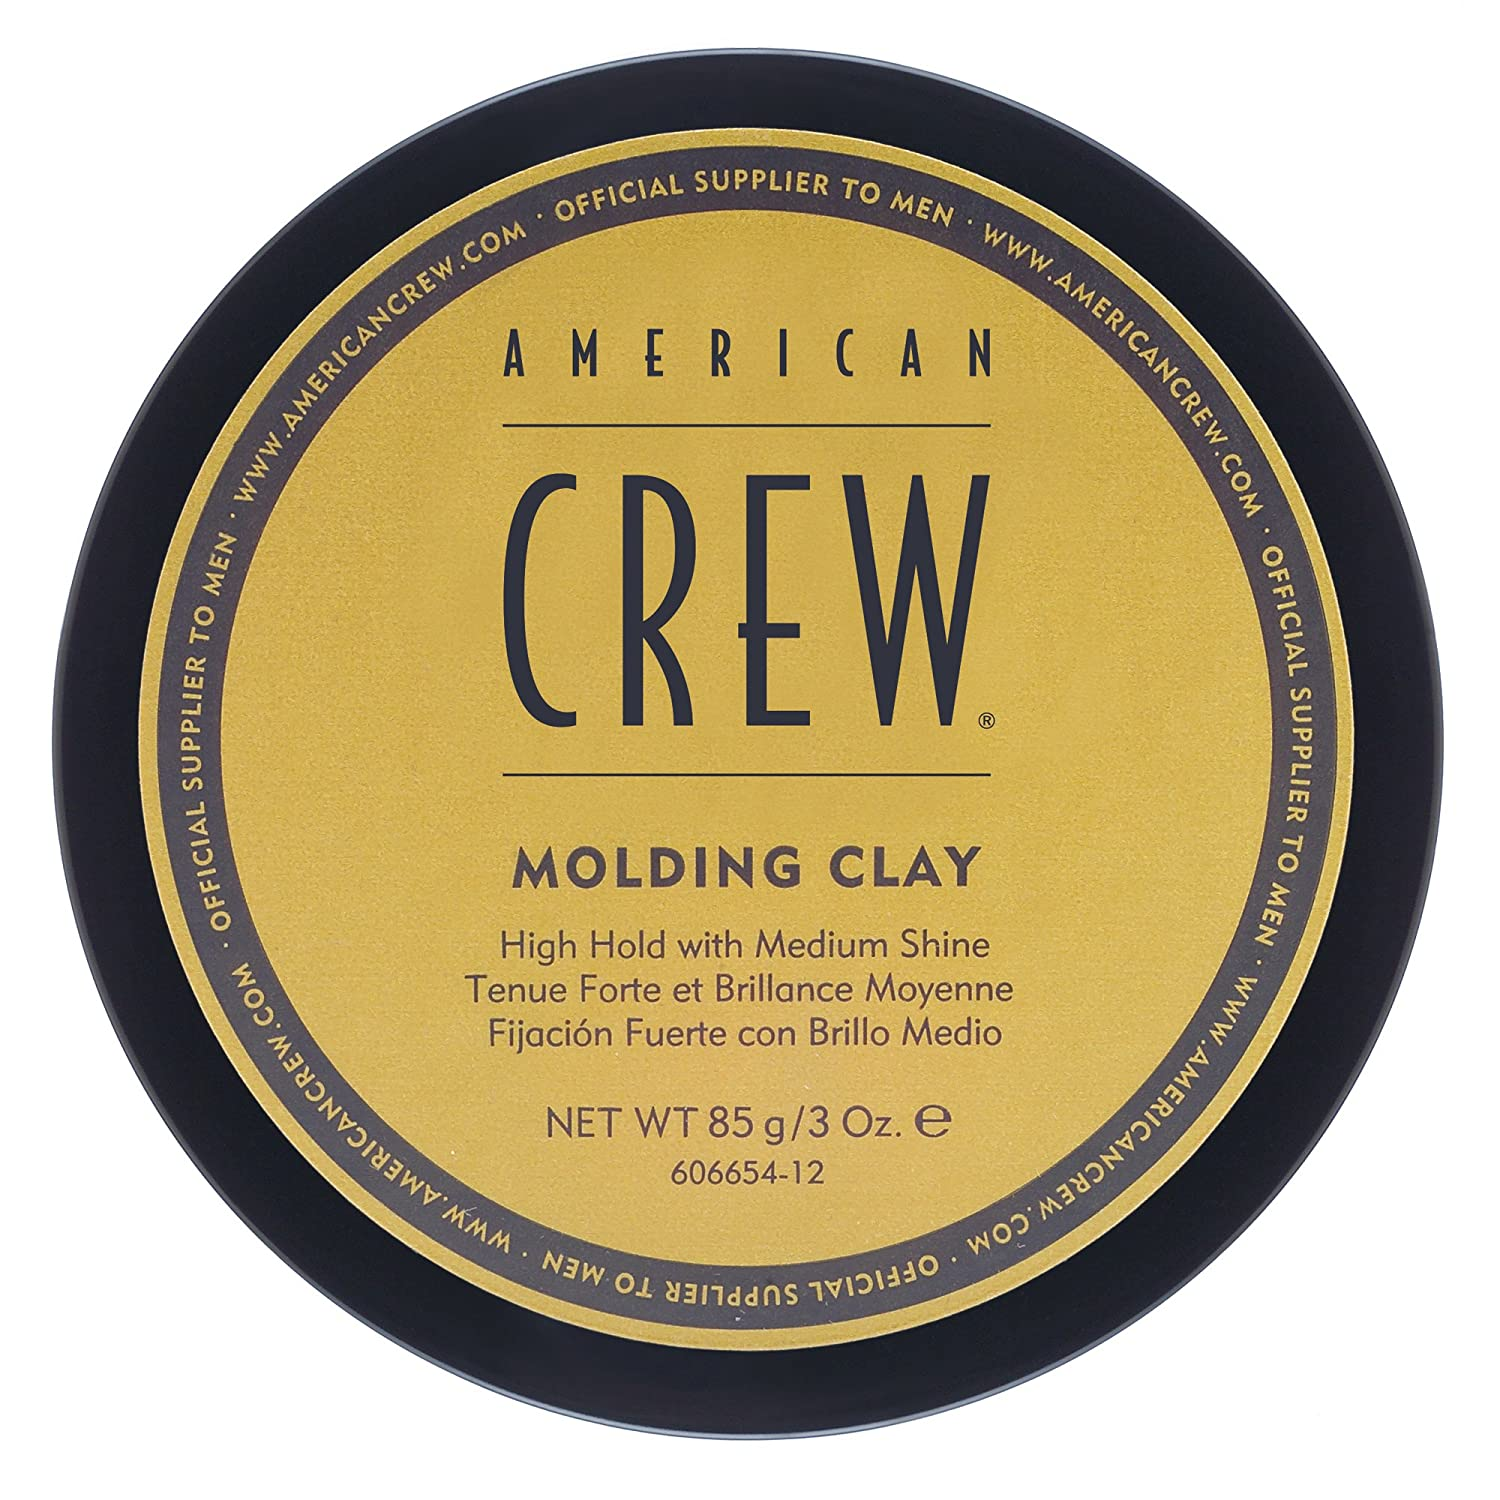 Molding Clay by American Crew for Men - 3 oz Clay Revlon Professional 192089